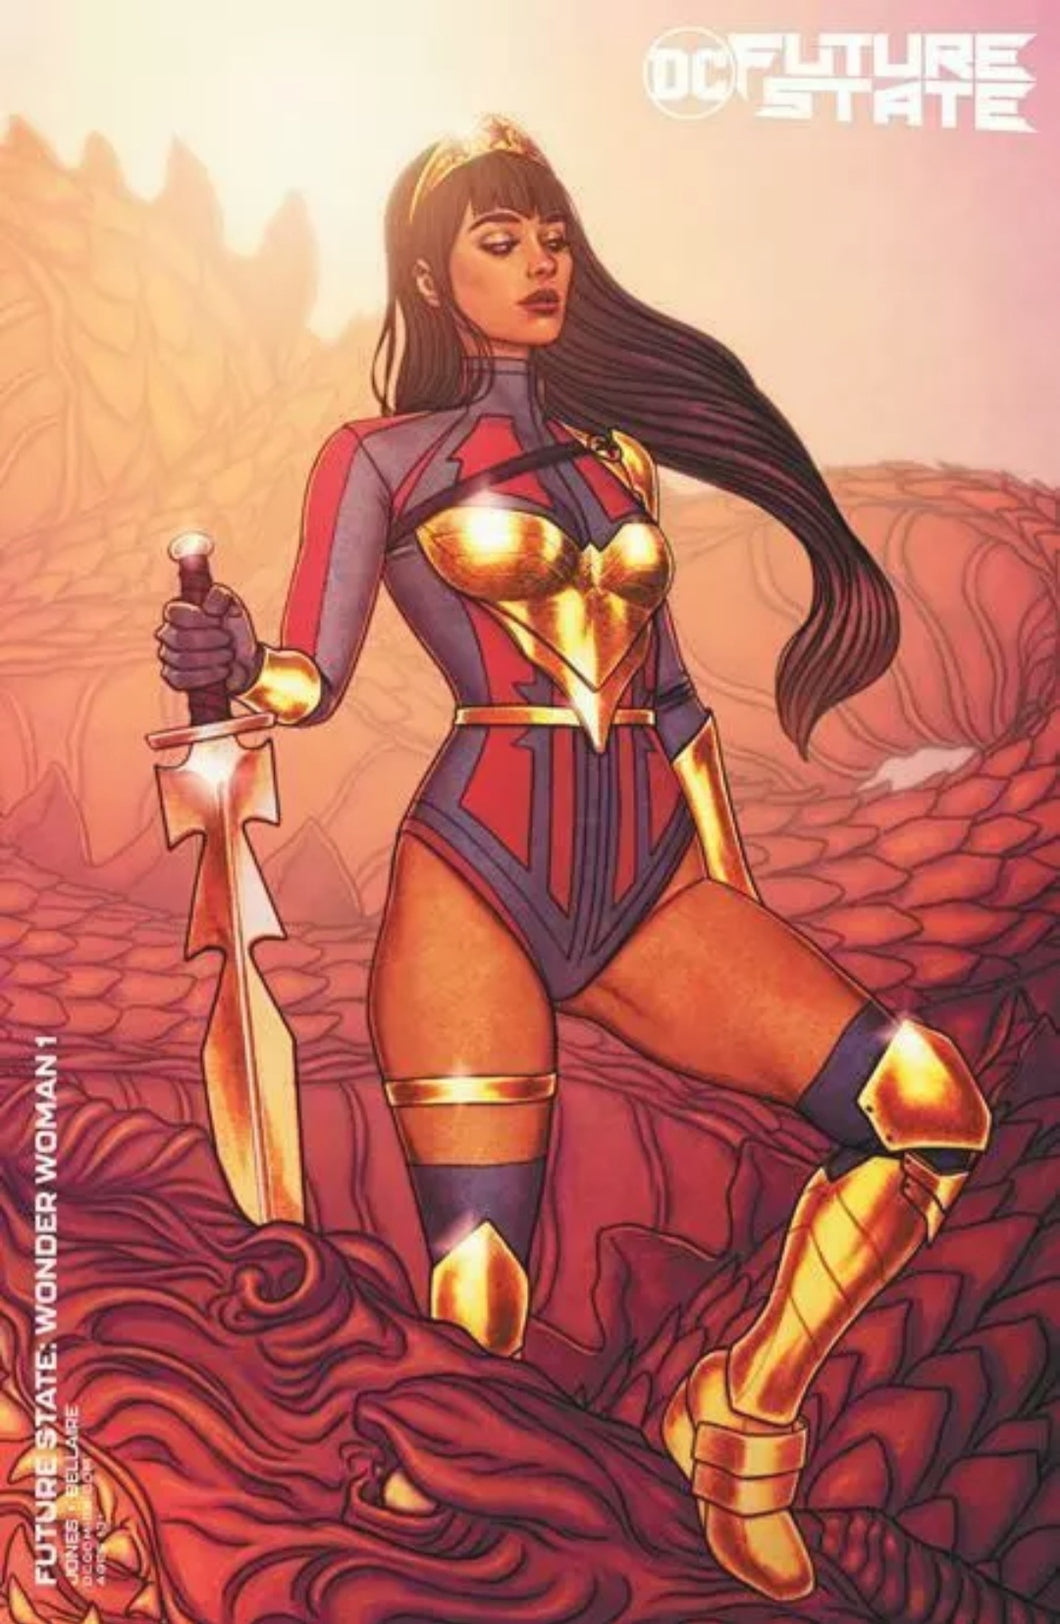 🔥 Future State: Wonder Woman #1 Jenny Frison Variant Cover